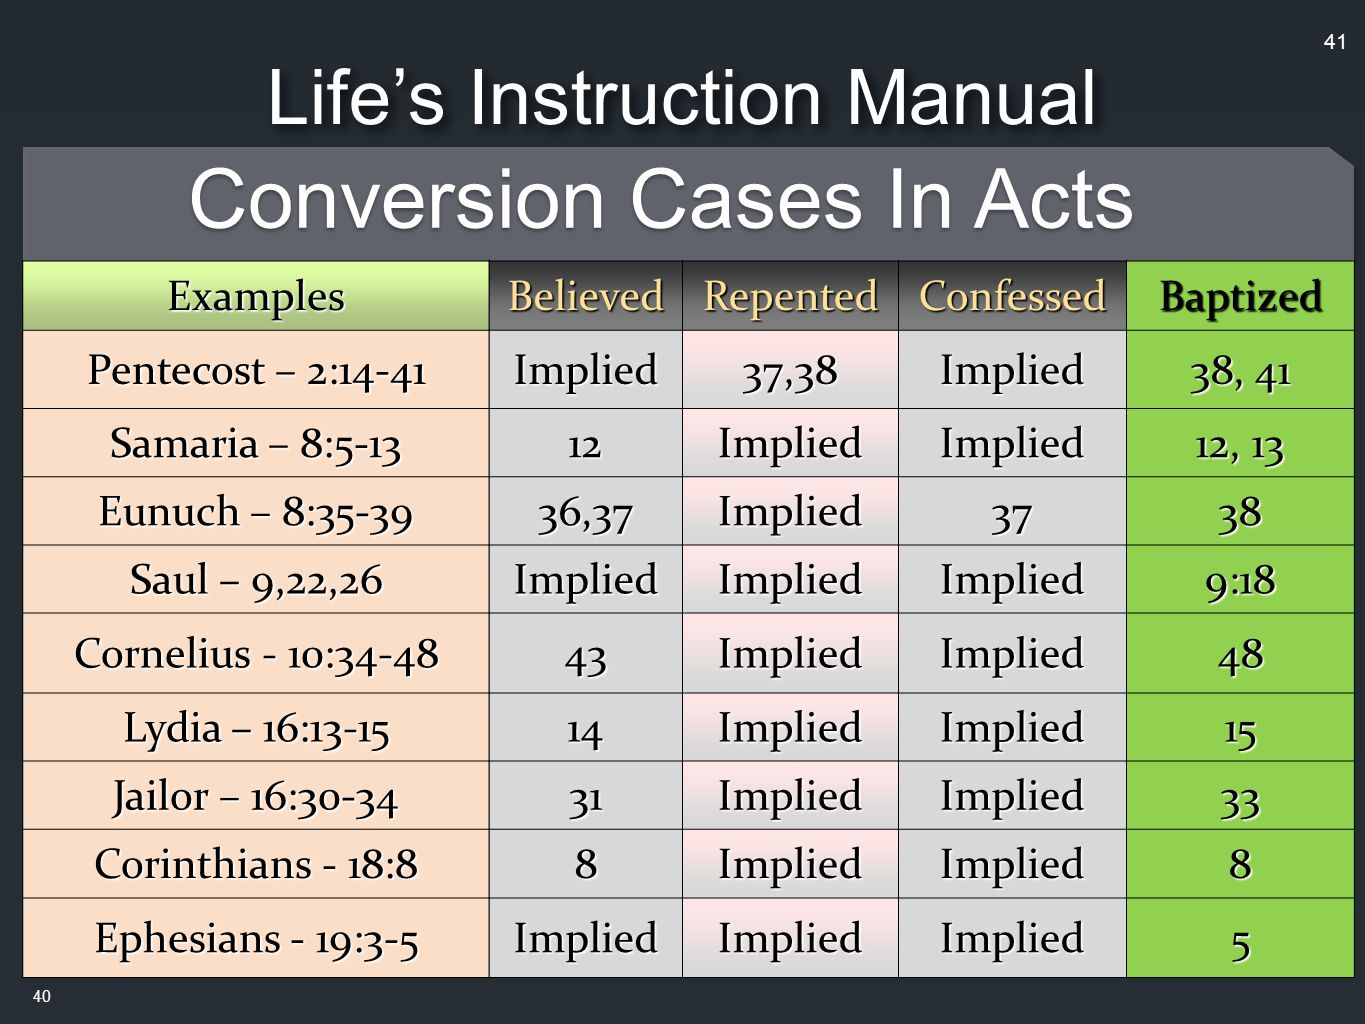 Conversion Cases In Acts